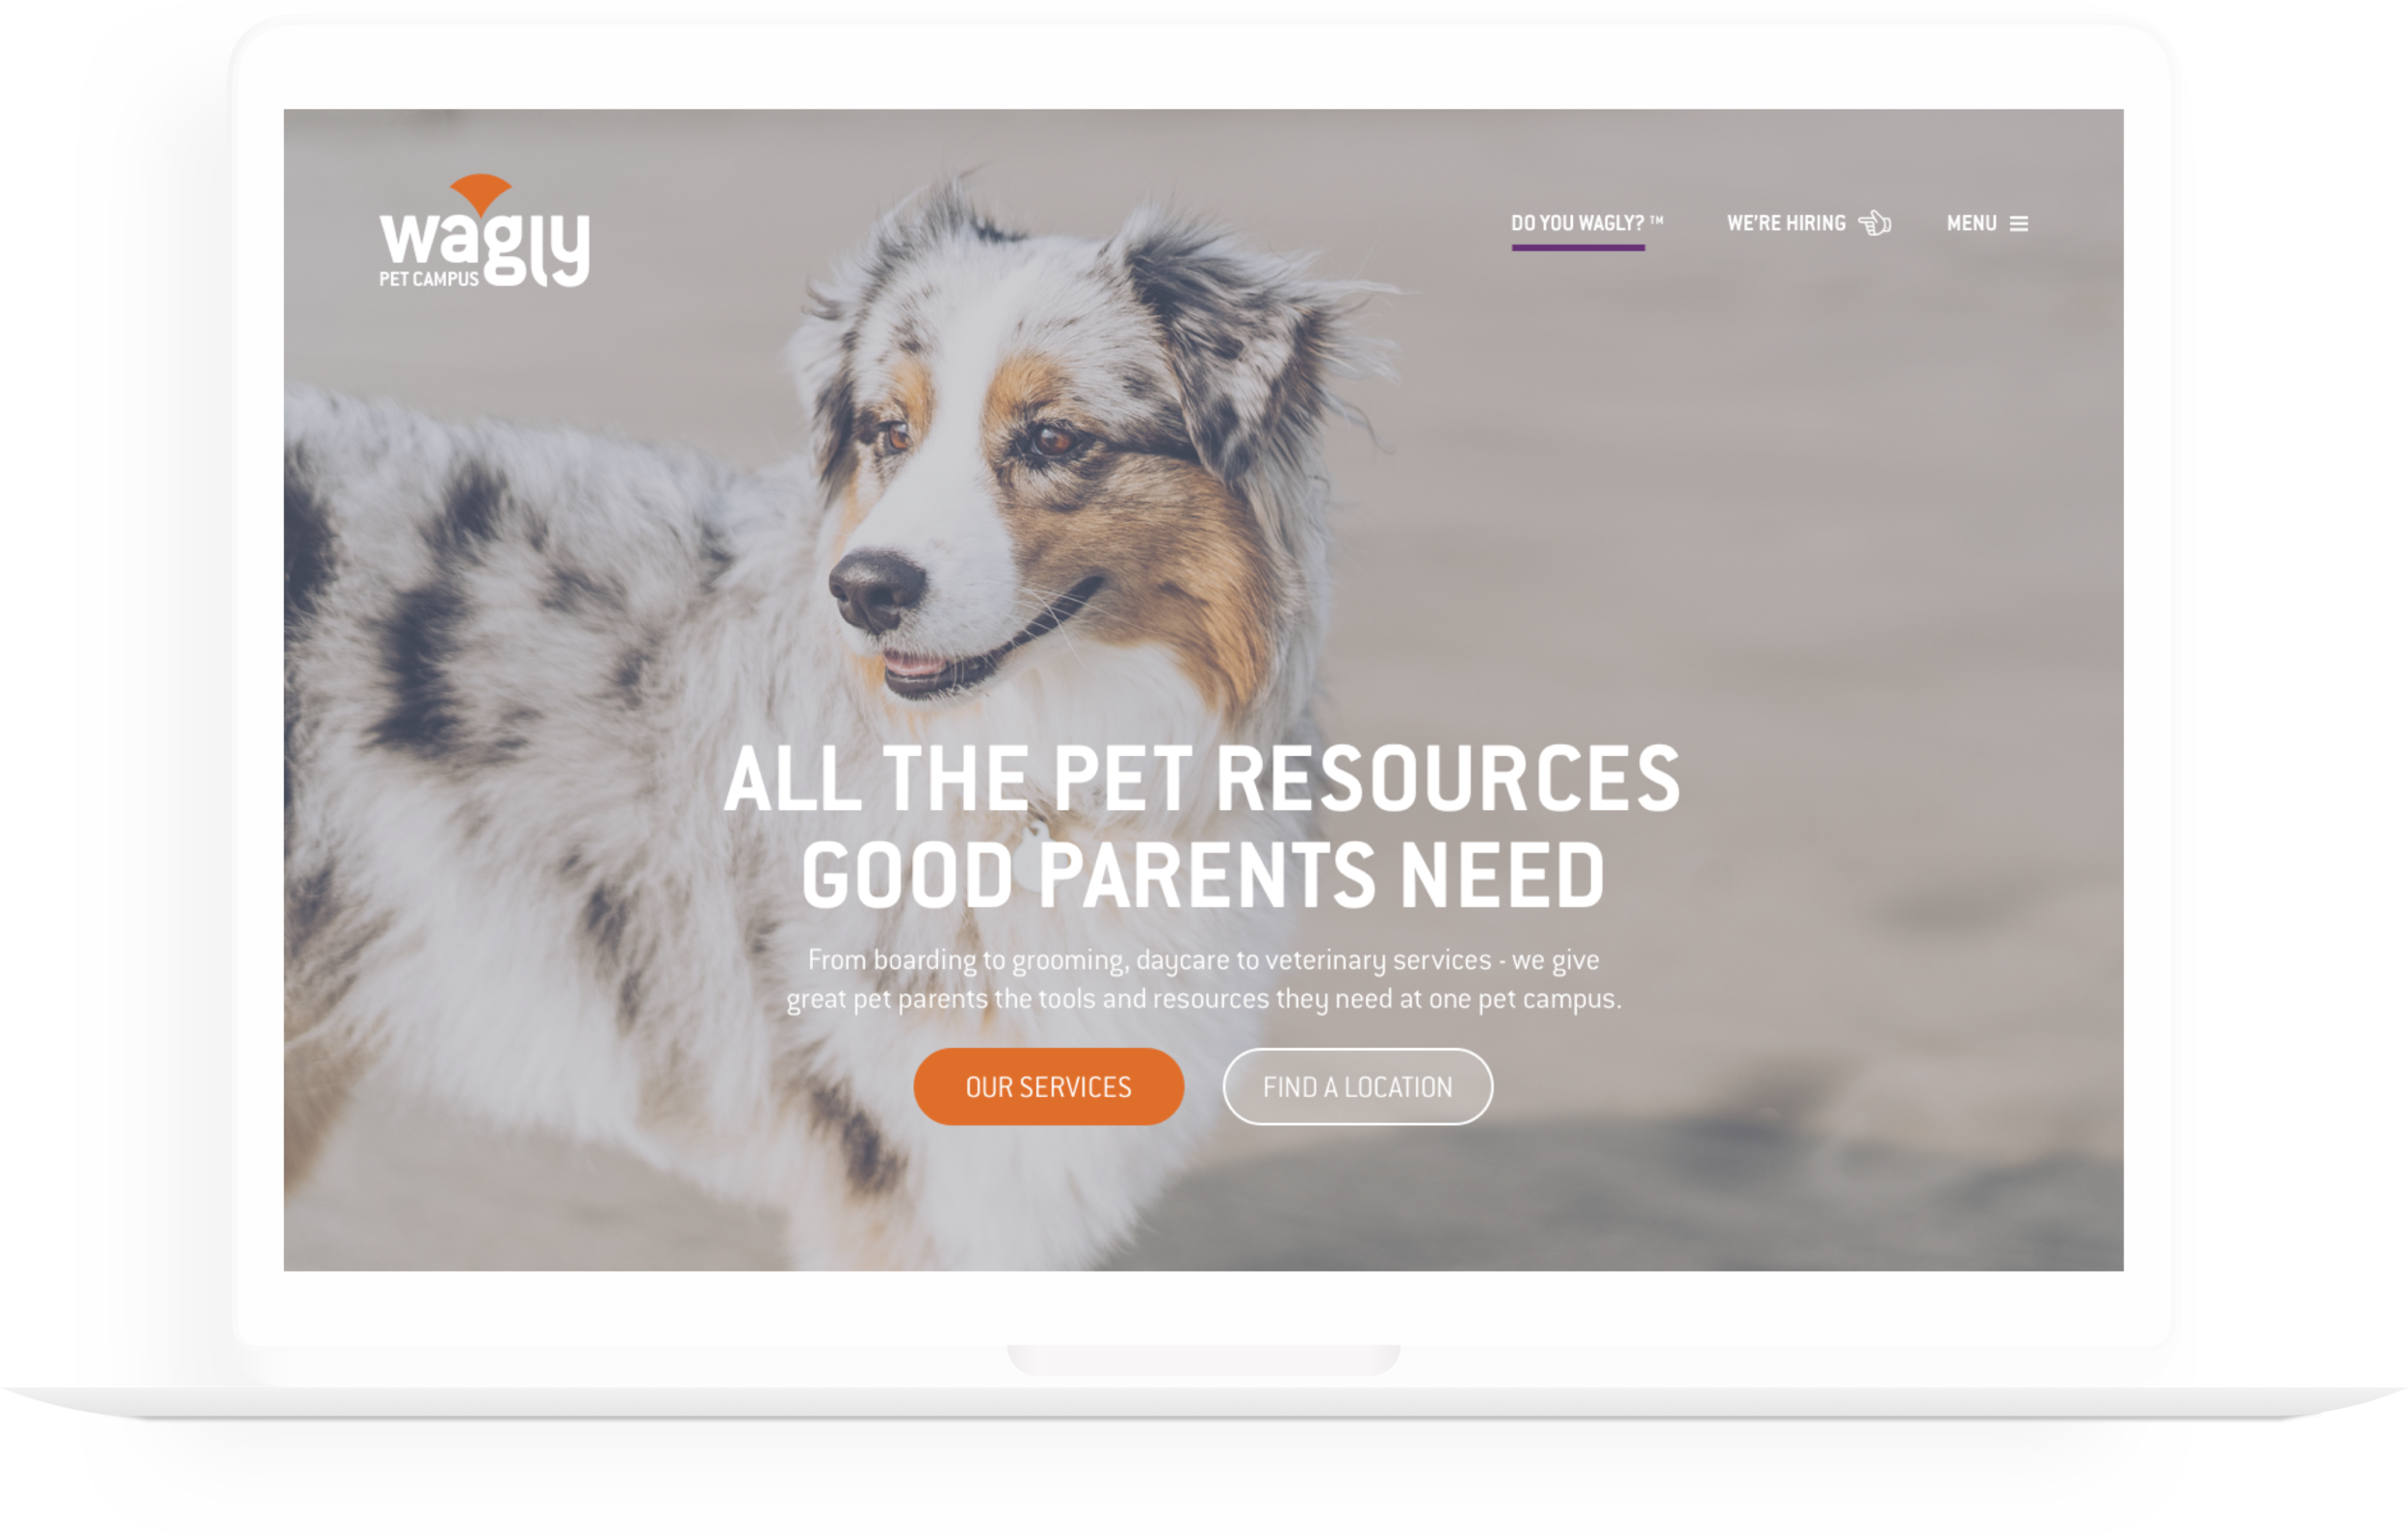 wagly_homepage_2.png